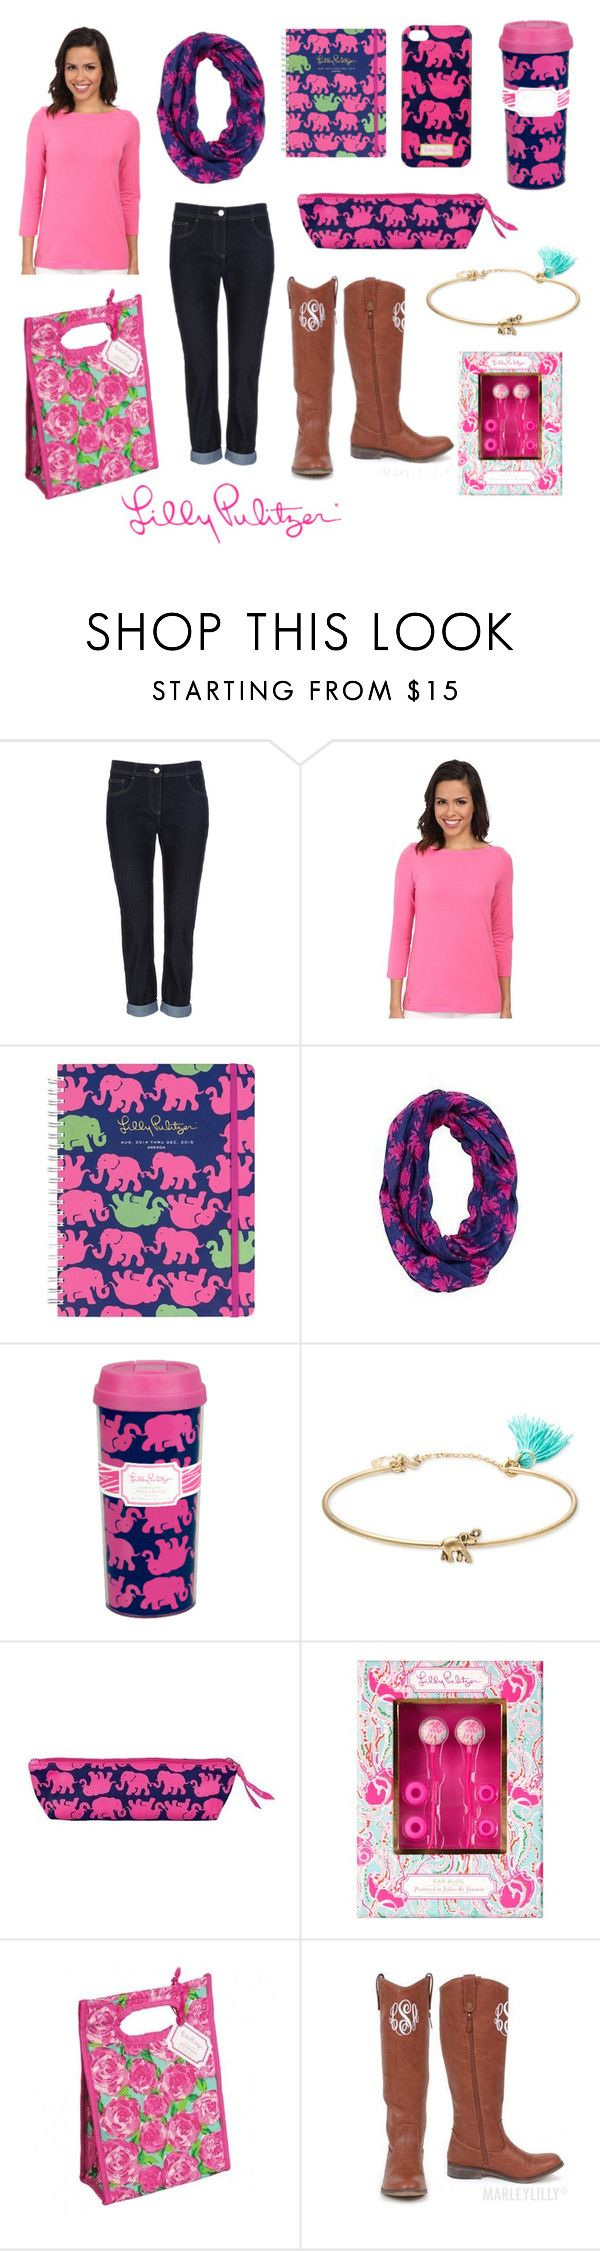 """""""L is for Lilly!!! And happy belated birthday to Lilly Pulitzer herself!"""" by chevronkoala ❤ liked on Polyvore featuring Wallis, Lilly Pulitzer and Lonna & Lilly"""